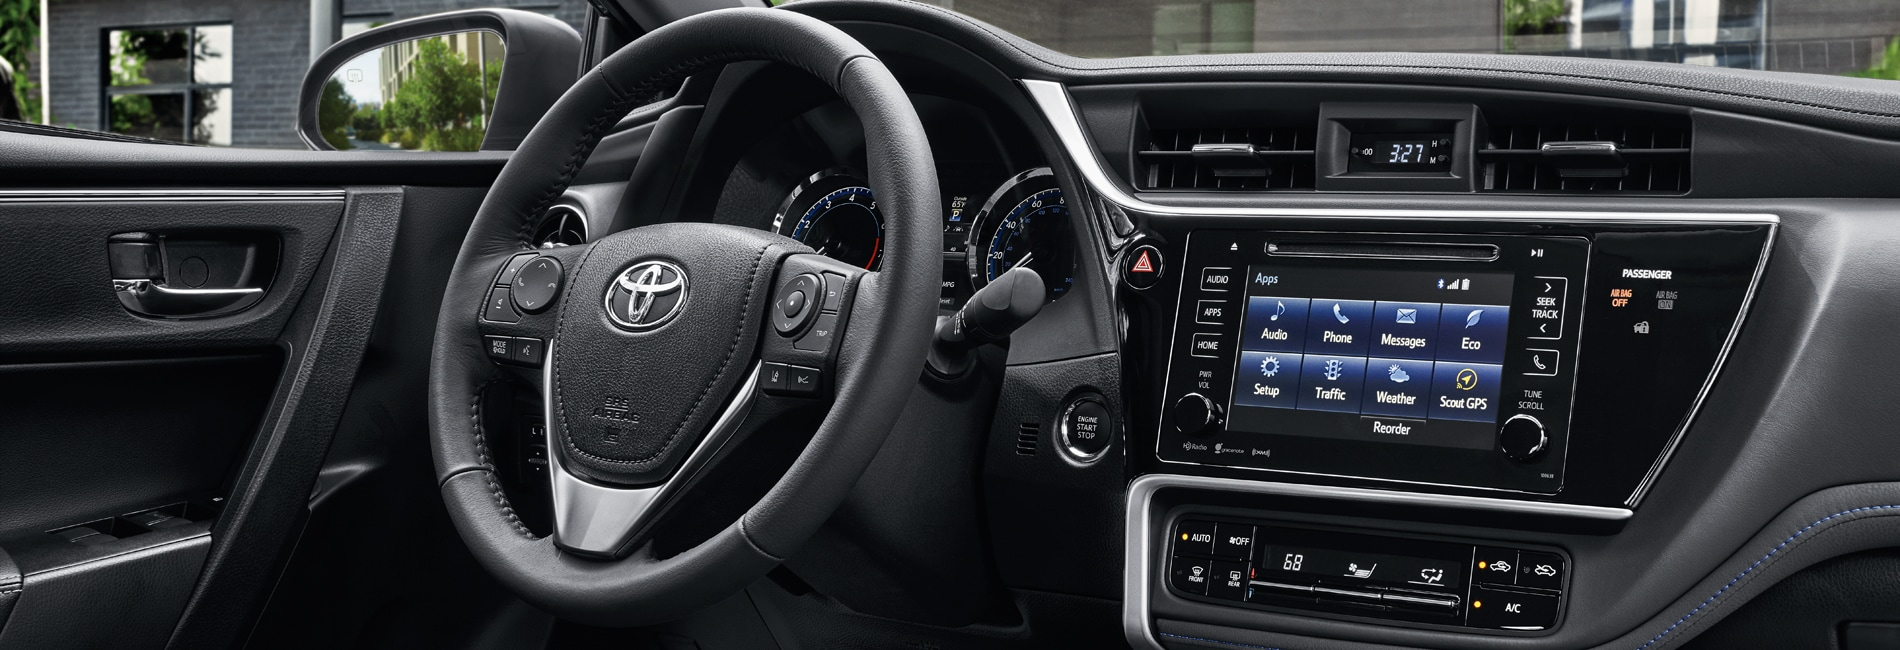 Toyota Corolla Interior Vehicle Features